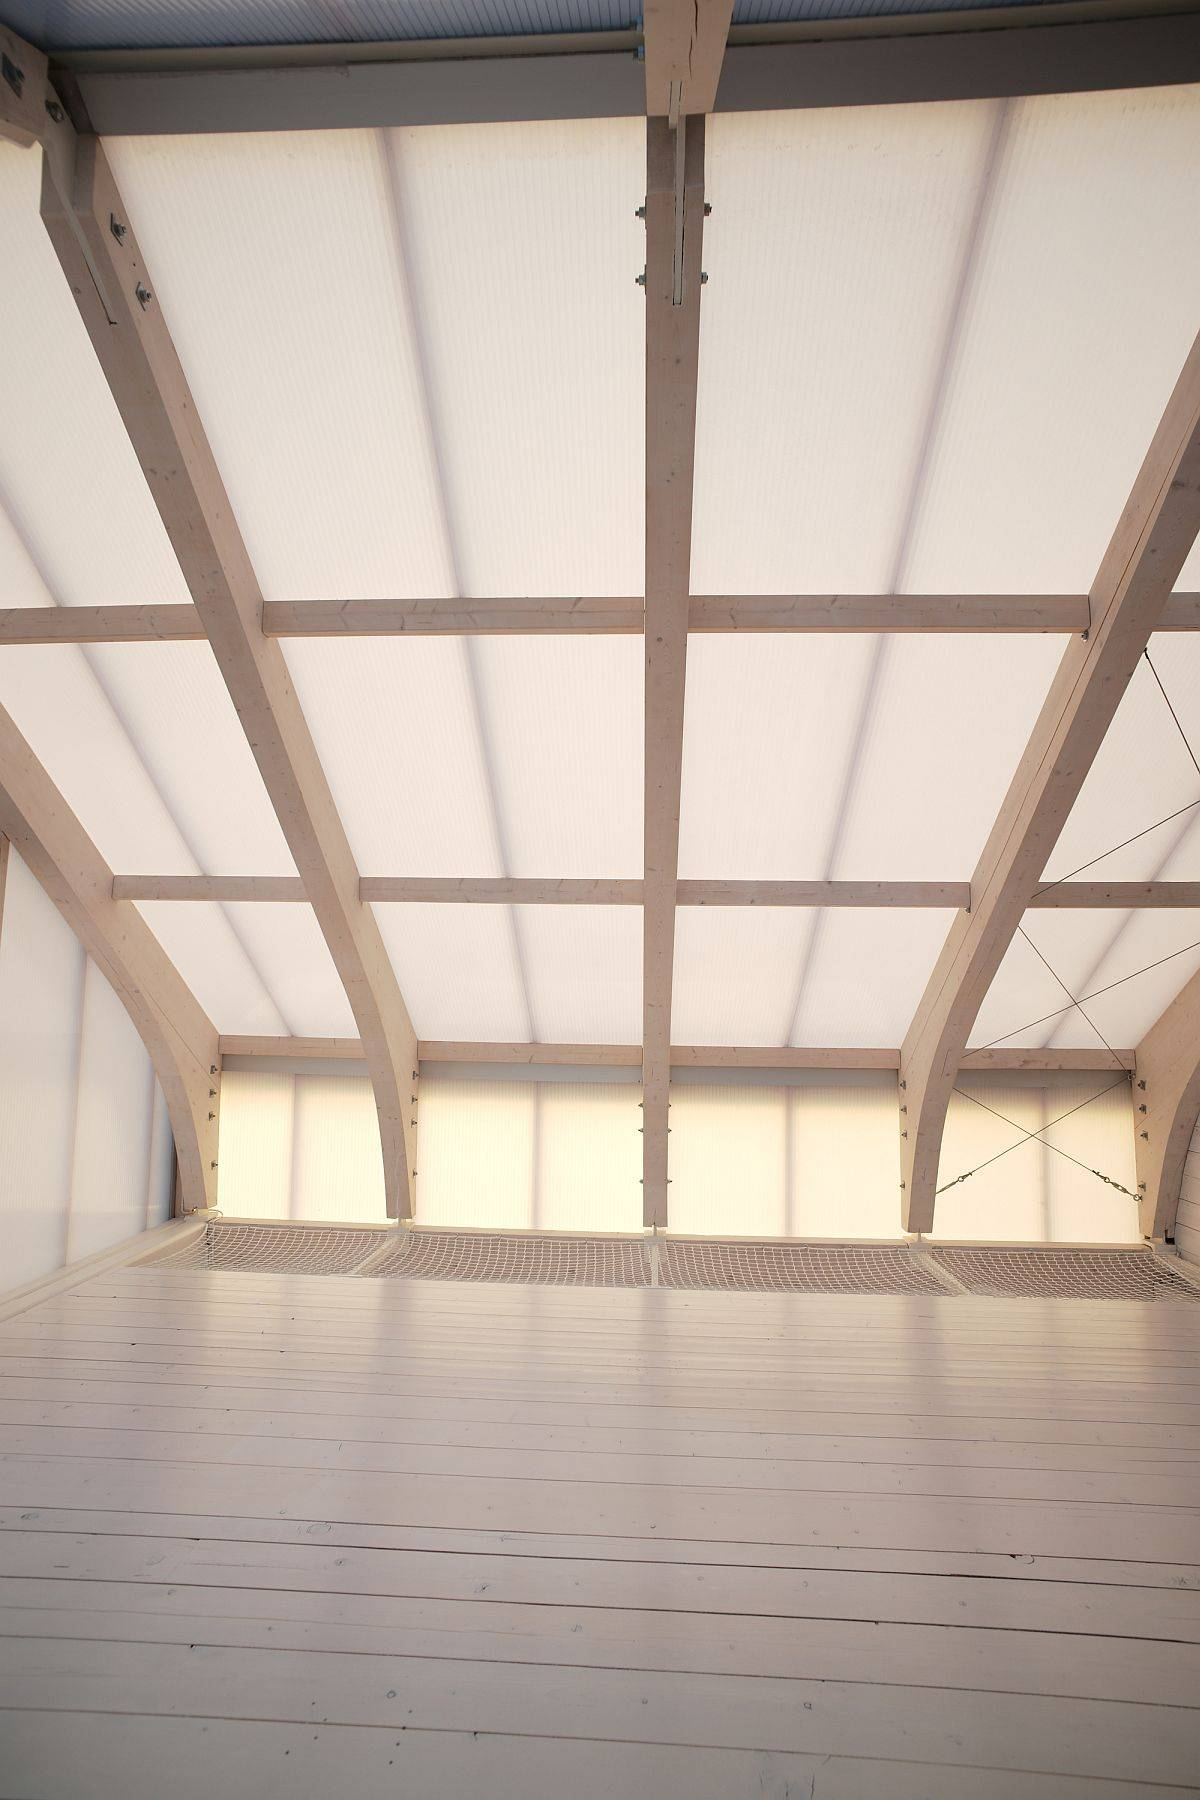 Wooden-structure-coupled-with-aerogel-panels-for-the-pitched-roof-of-the-home-32741